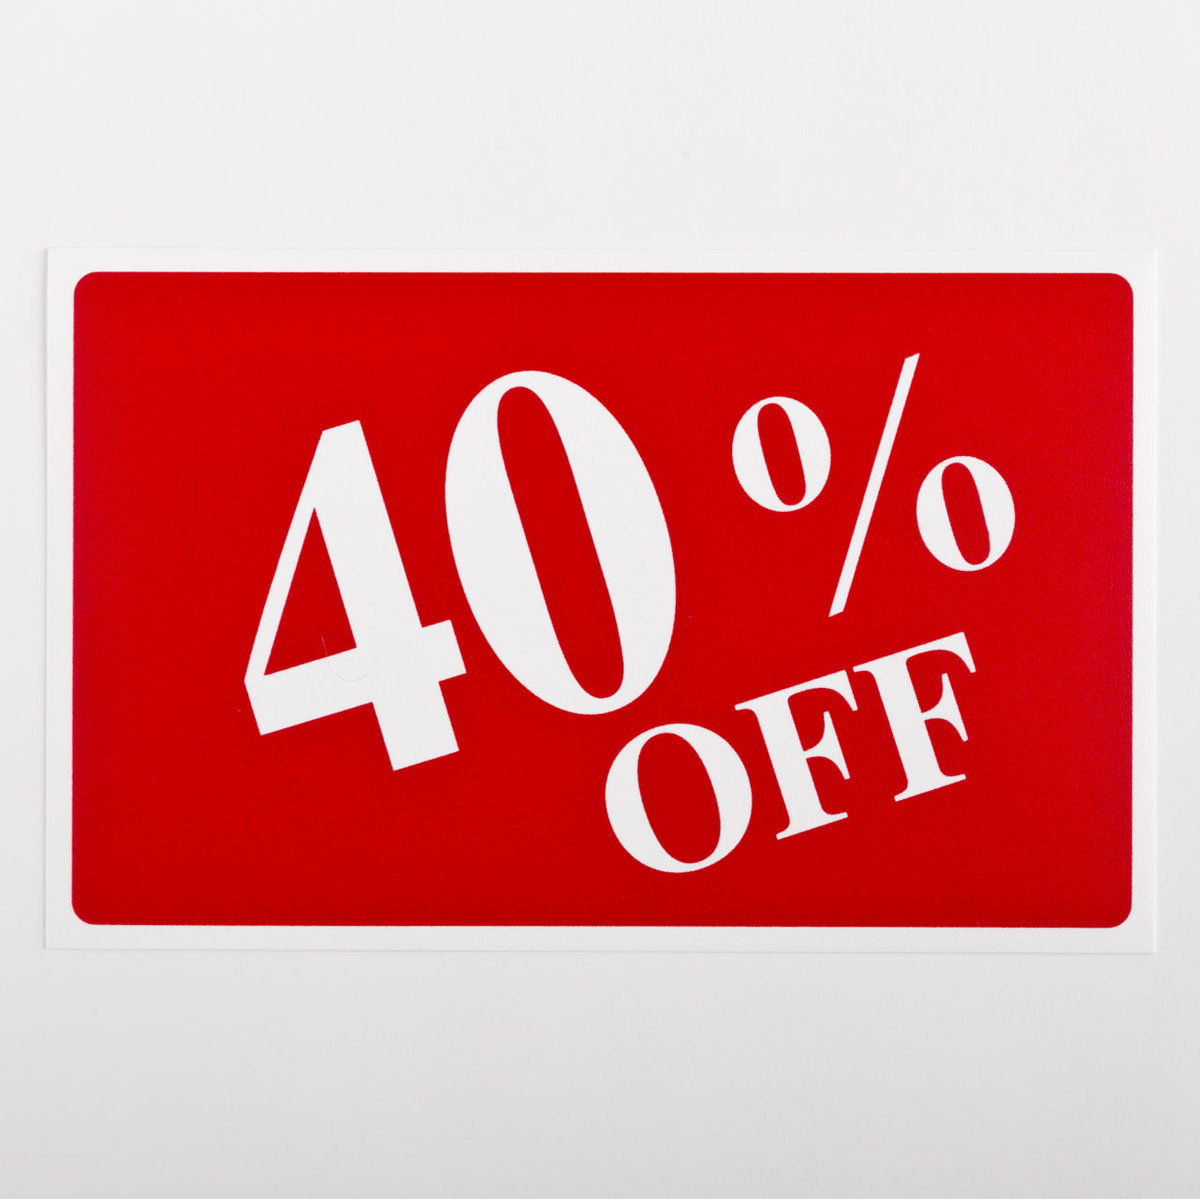 40% Off Sign